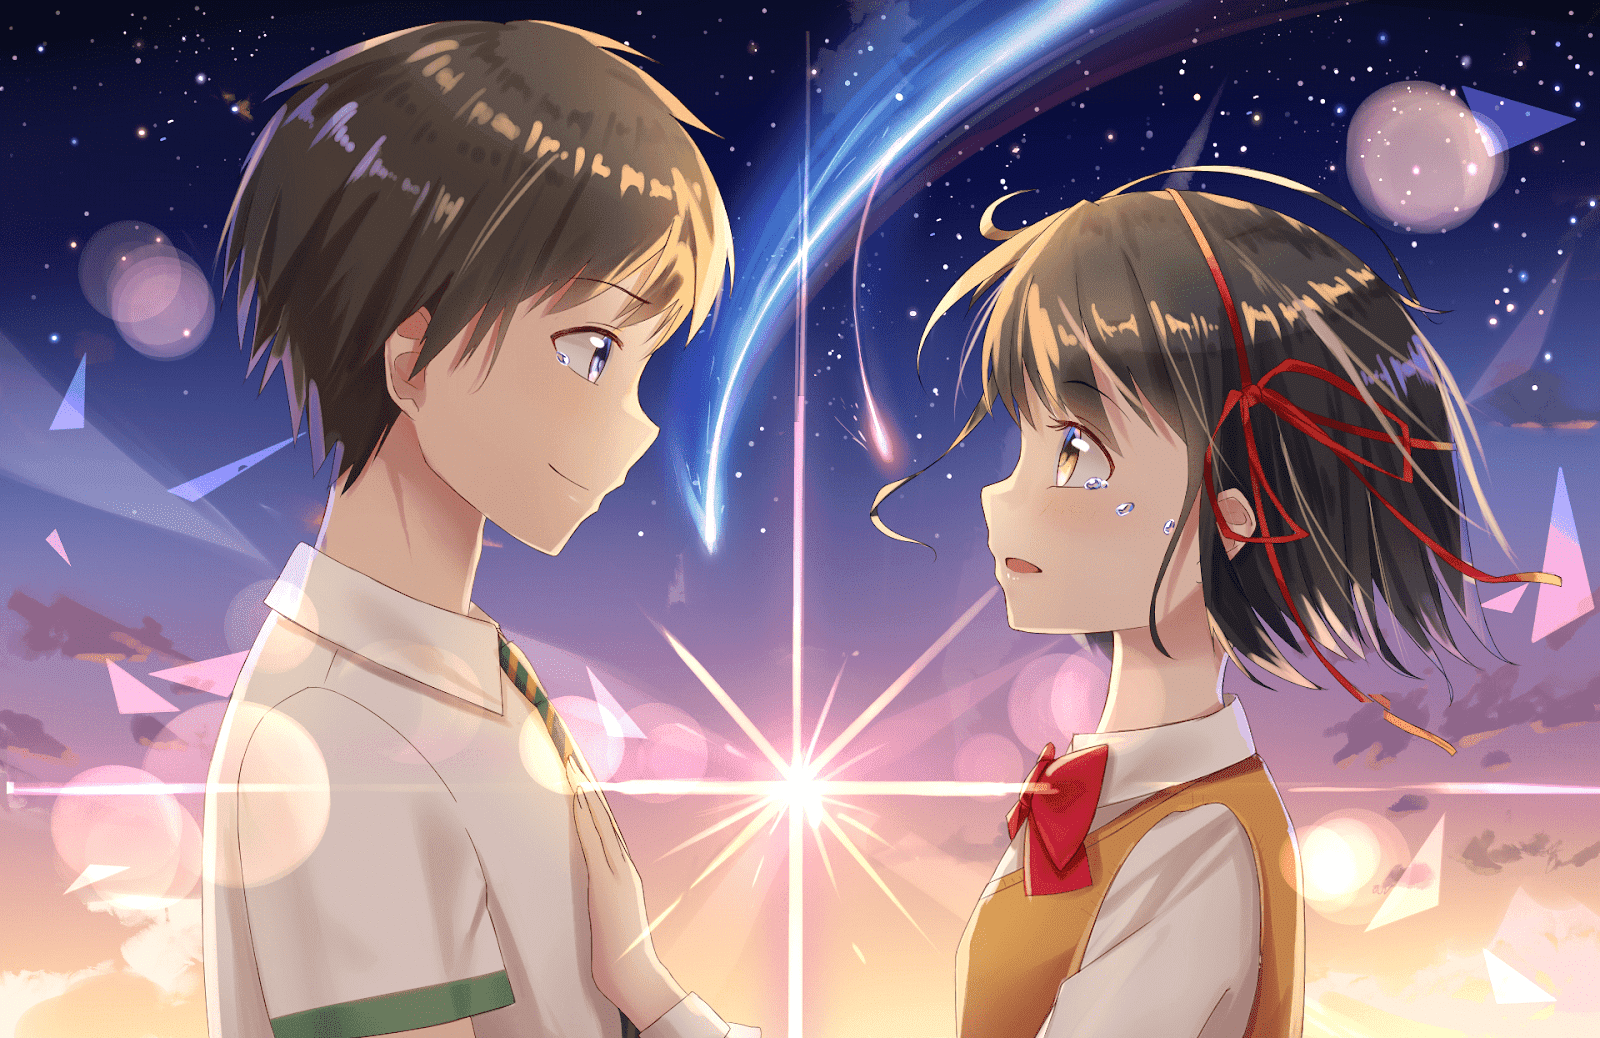 AowVN%2B%252835%2529 - [ Hình Nền ] Anime Your Name. - Kimi no Nawa full HD cực đẹp | Anime Wallpaper